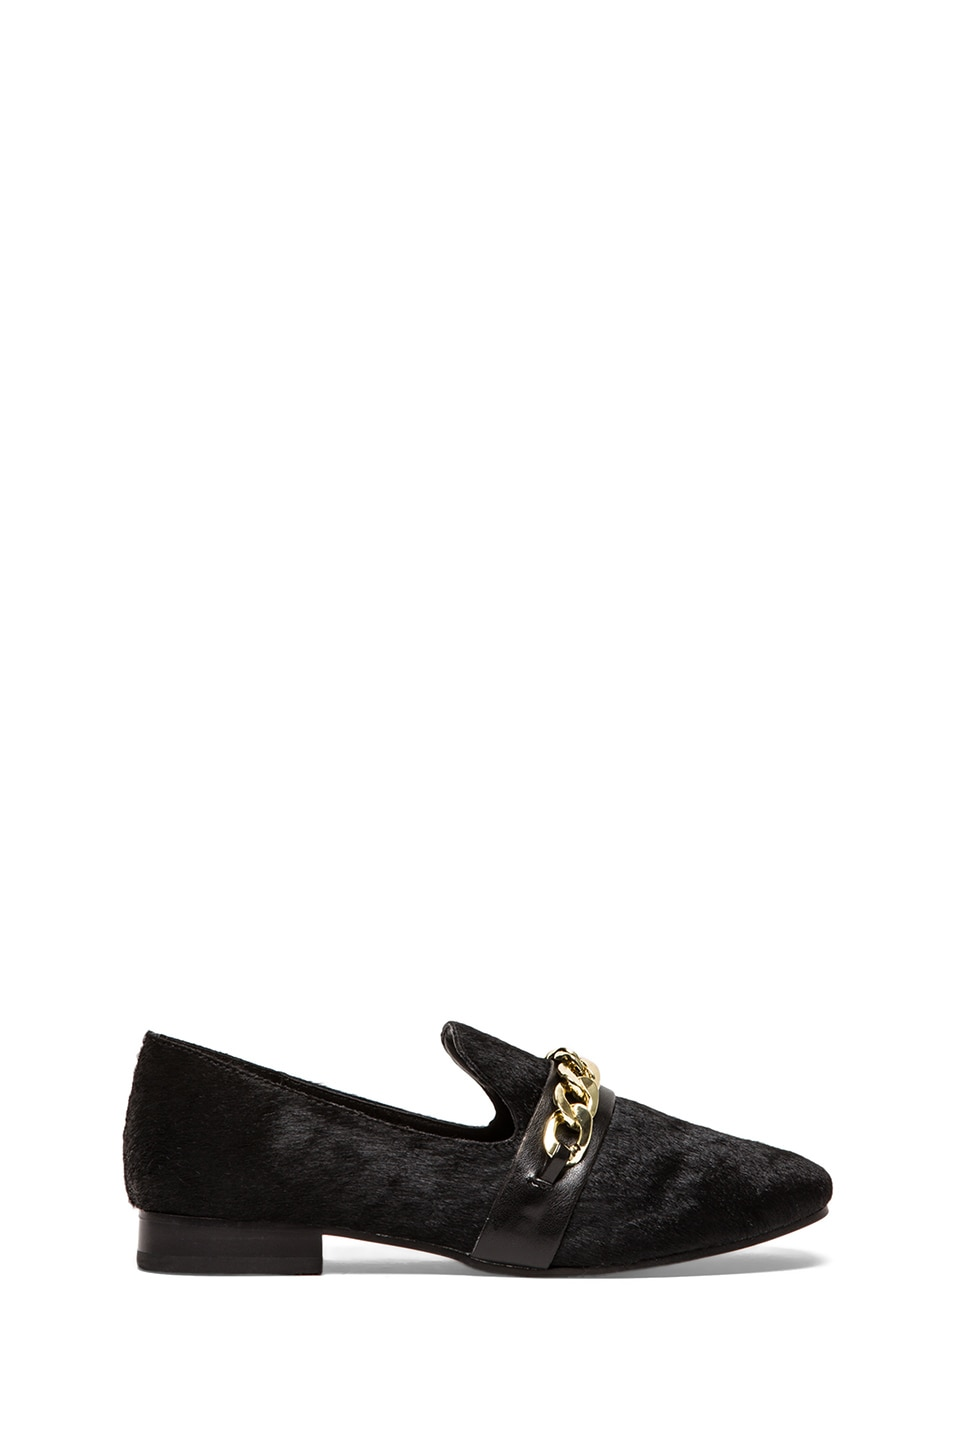 Steve Madden Changig Loafer with Calf Fur in Black